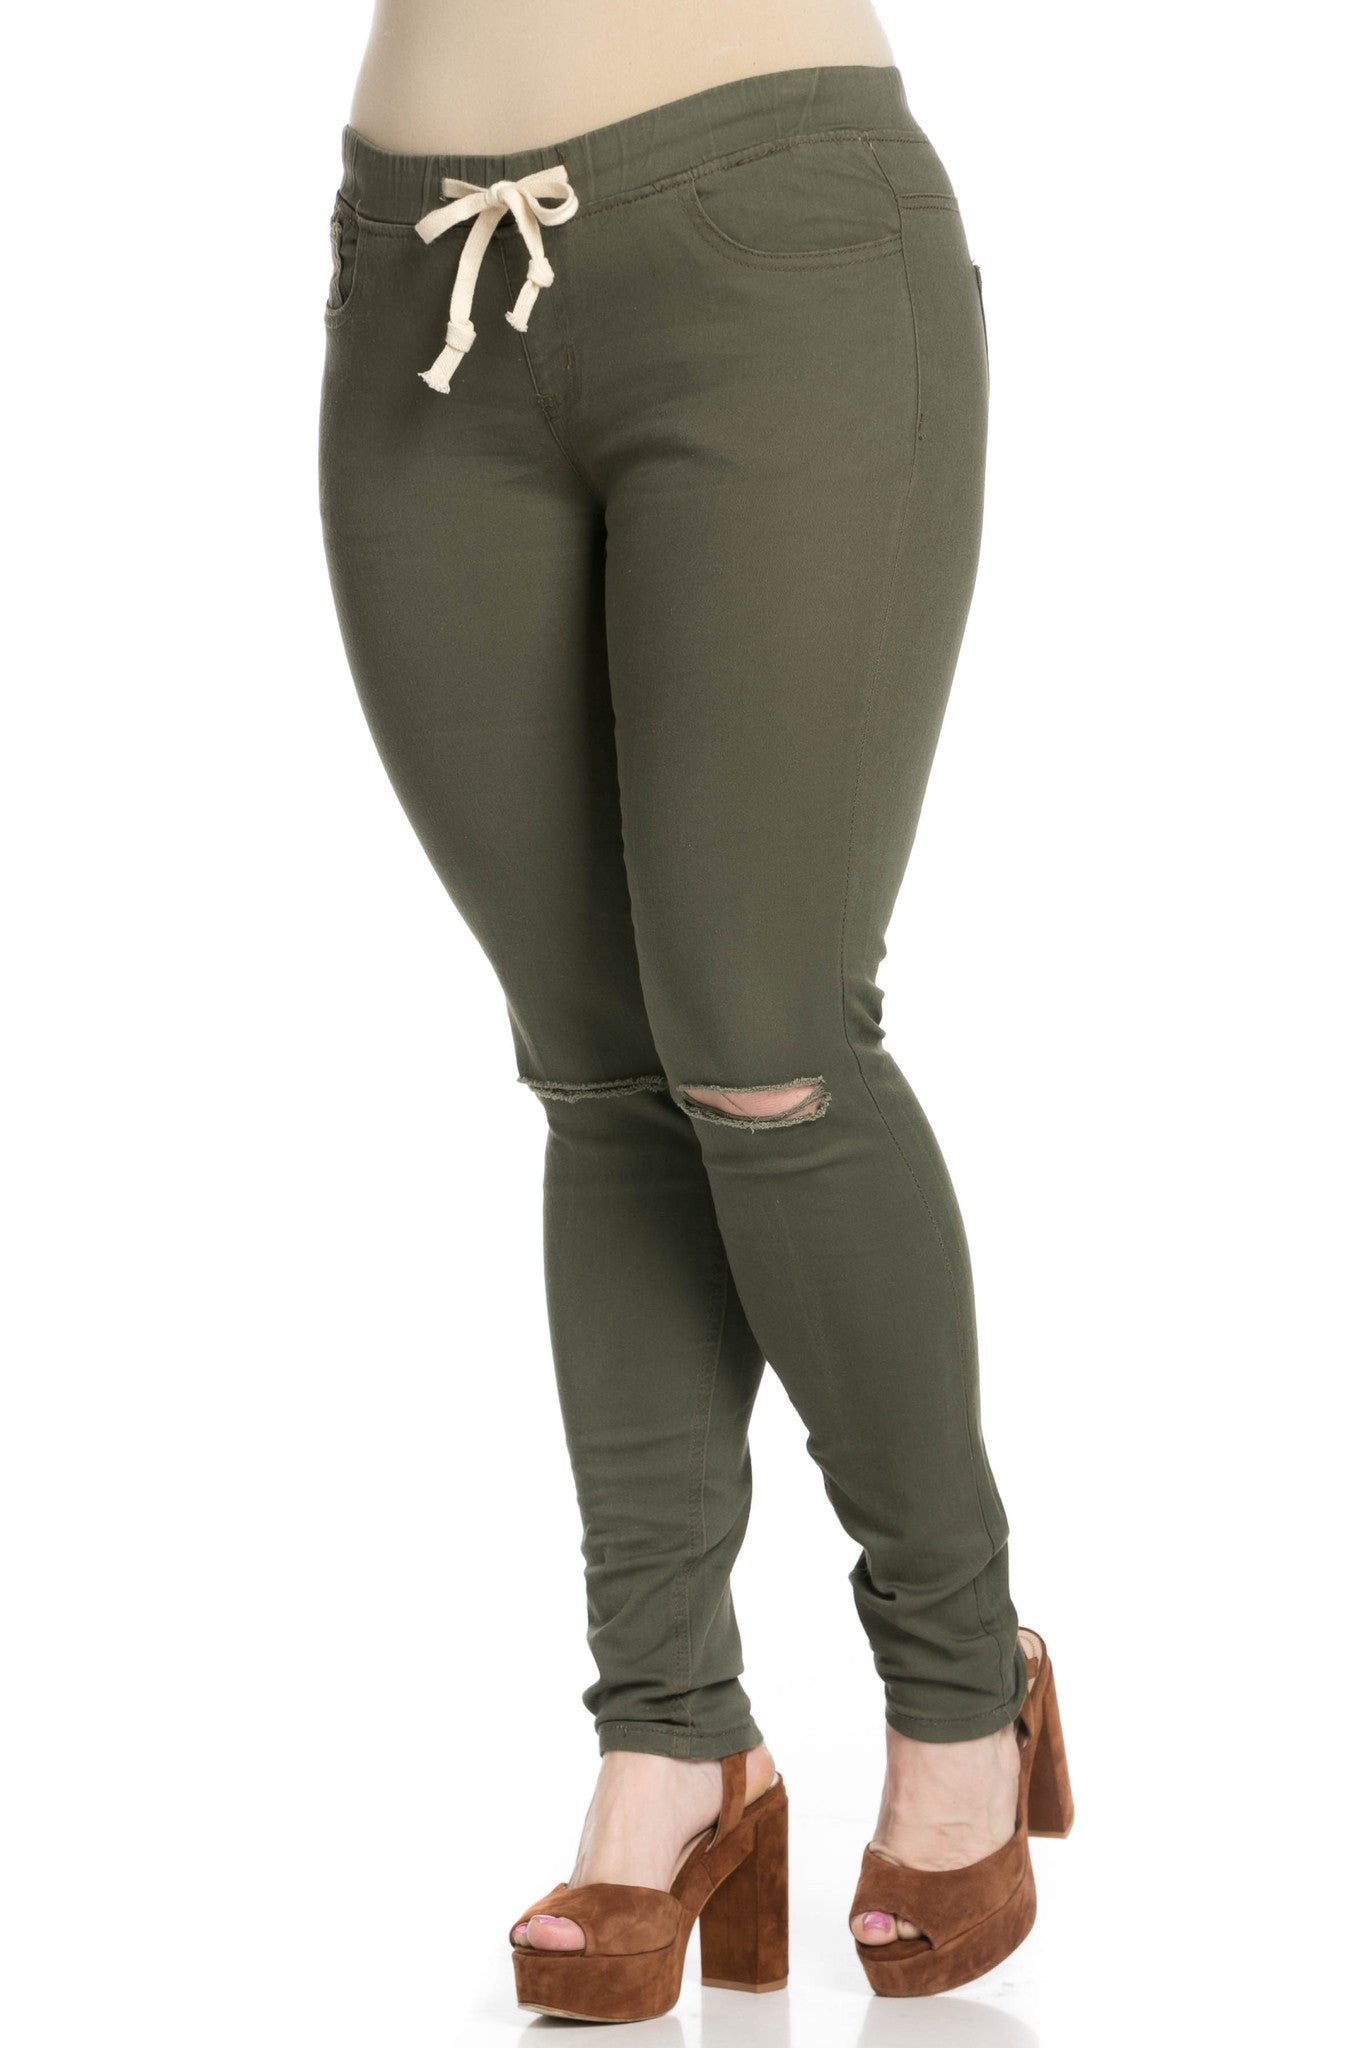 Destroyed Olive Skinny Jogger Jeans - Pants - My Yuccie - 11